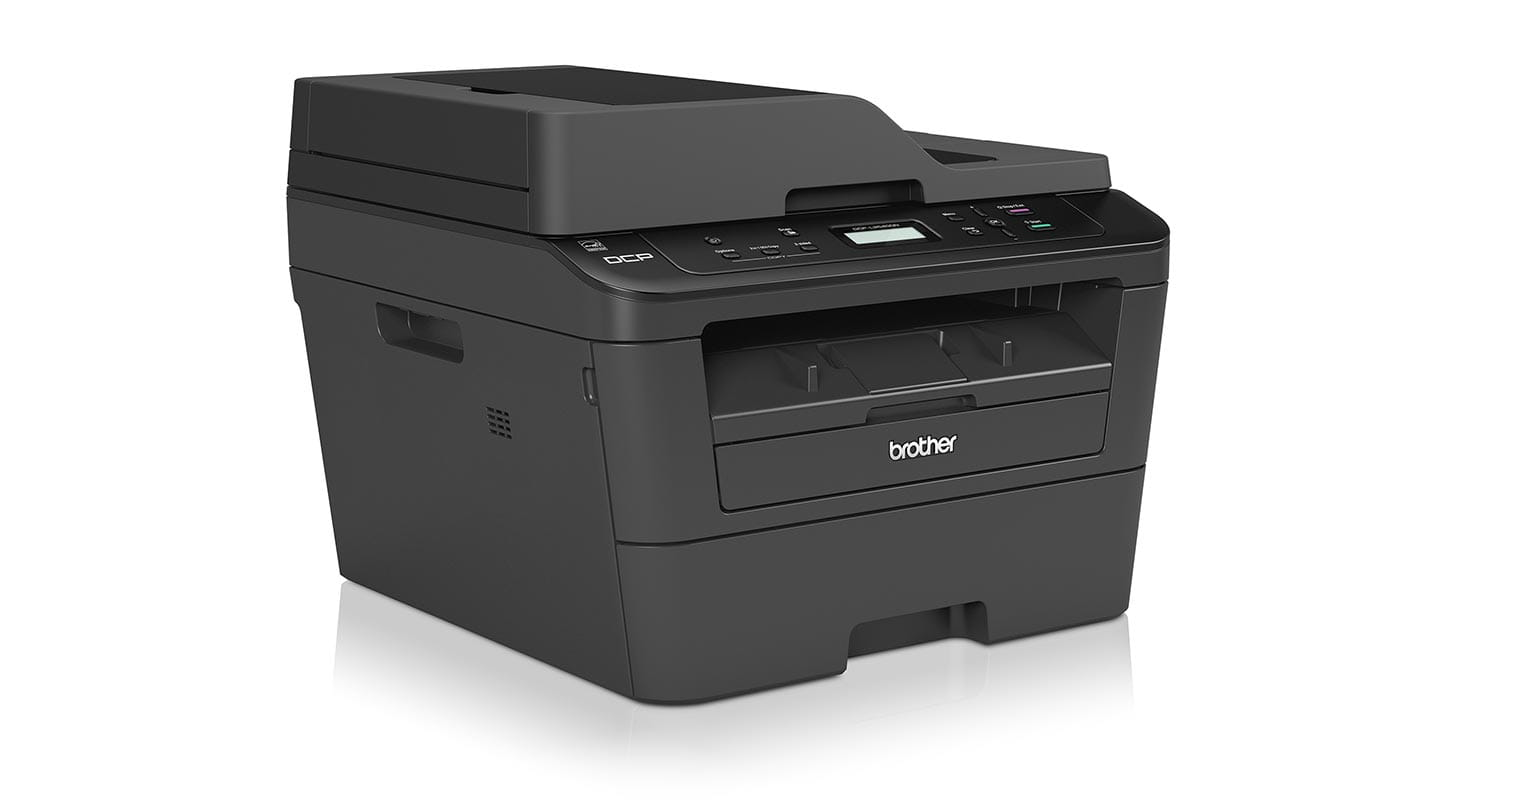 Brother L2540 laser printer